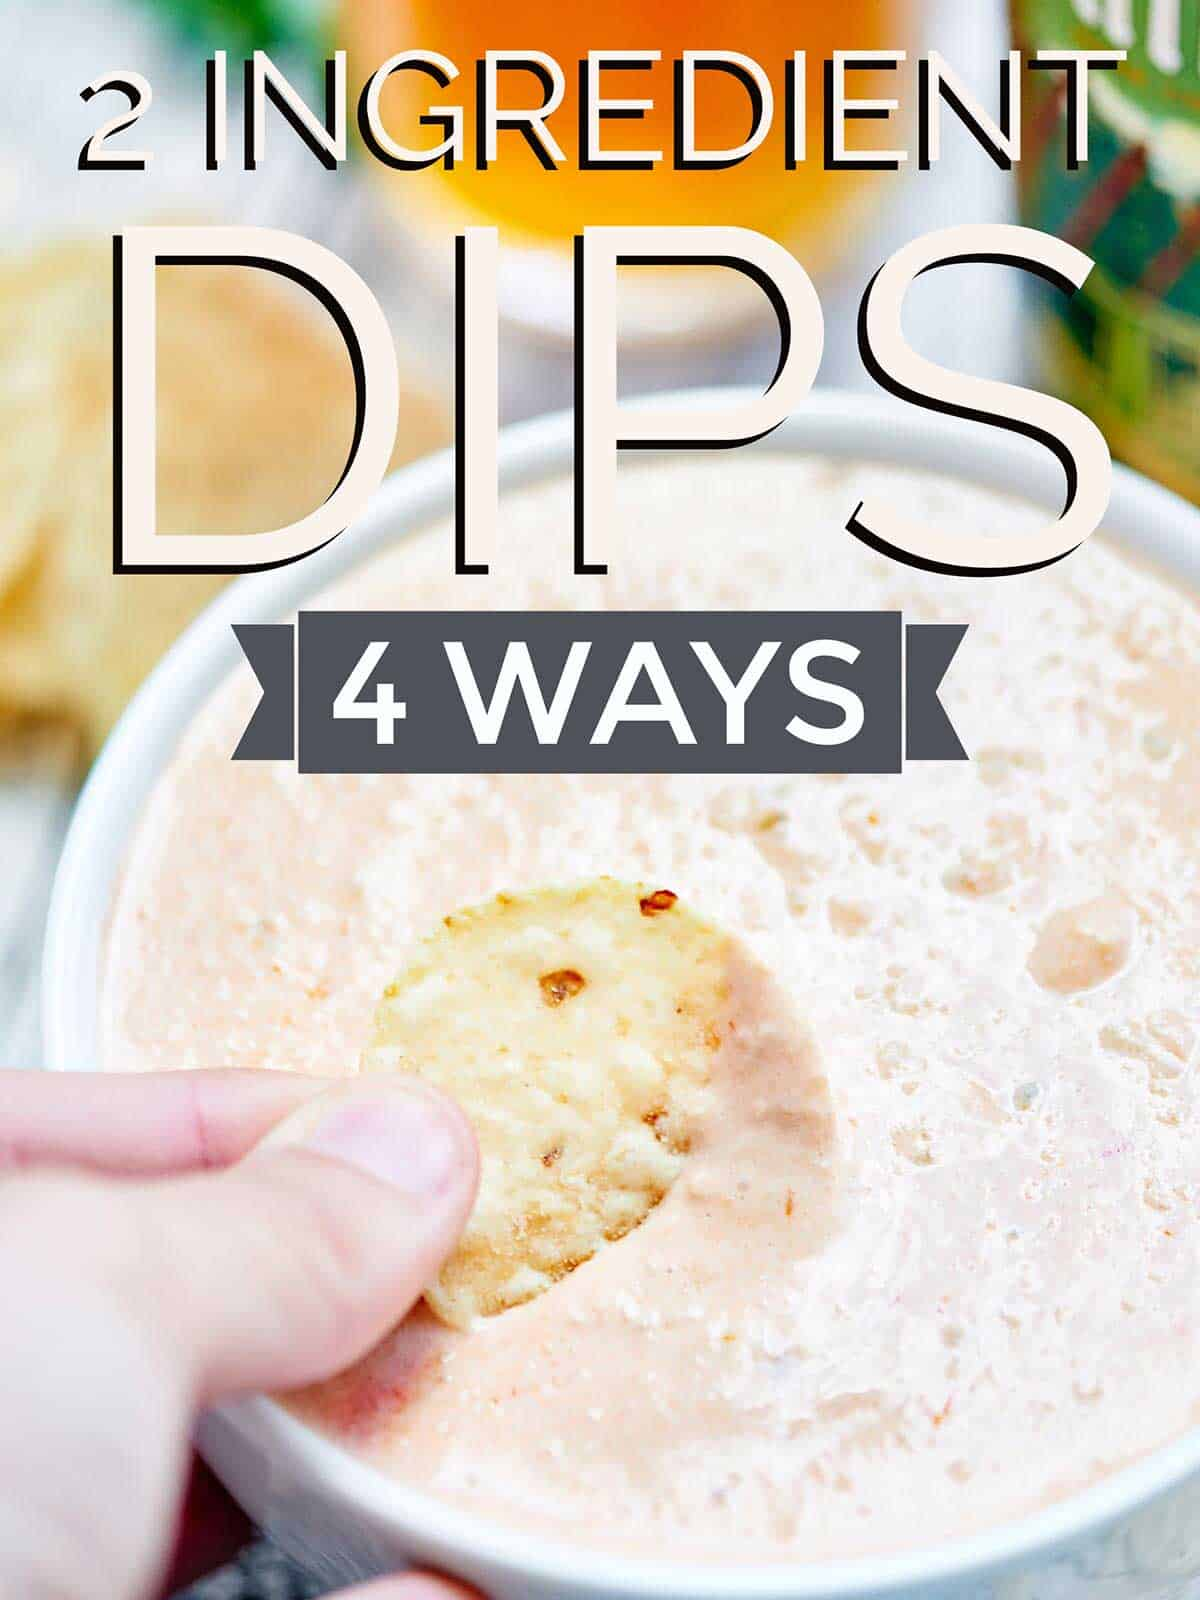 To ingredient dips: 4 ways graphic with text and chip being dipped into bowl of salsa dip